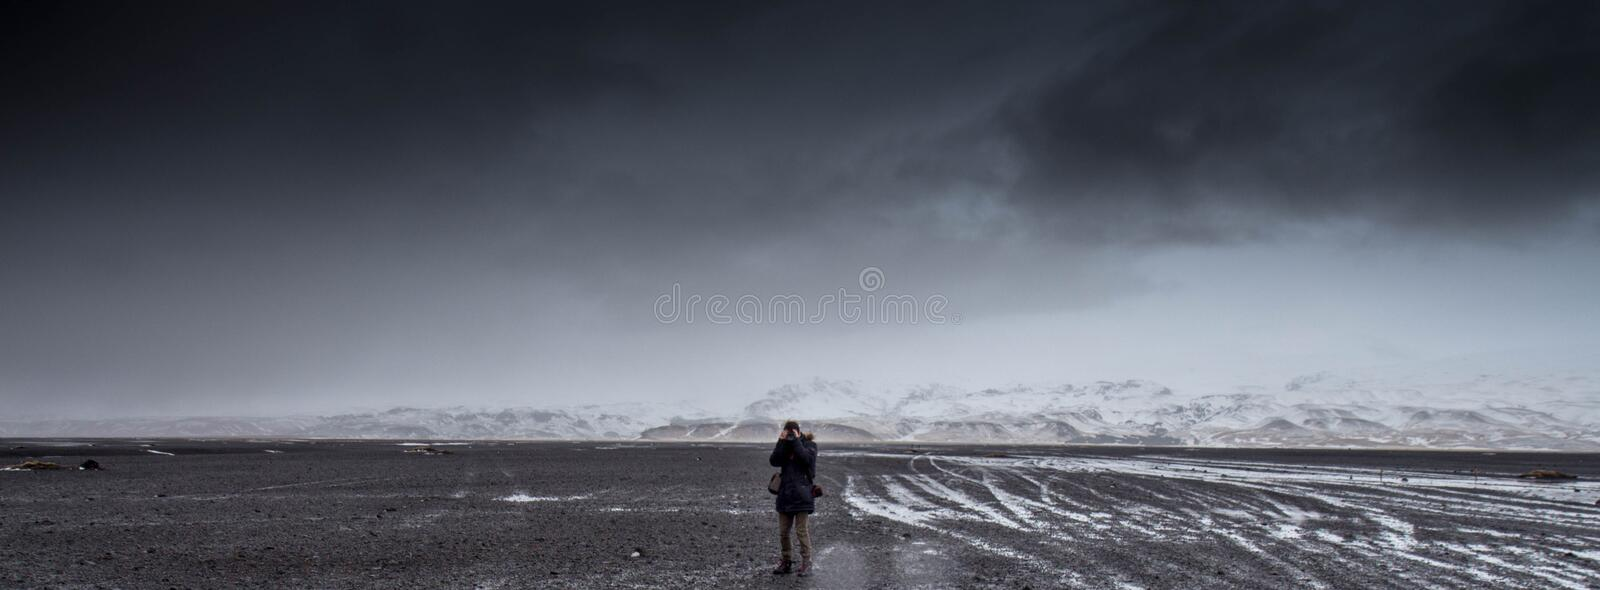 Man Standing On Gray Dessert Under Gray Cloudy Sky During Daytime Free Public Domain Cc0 Image